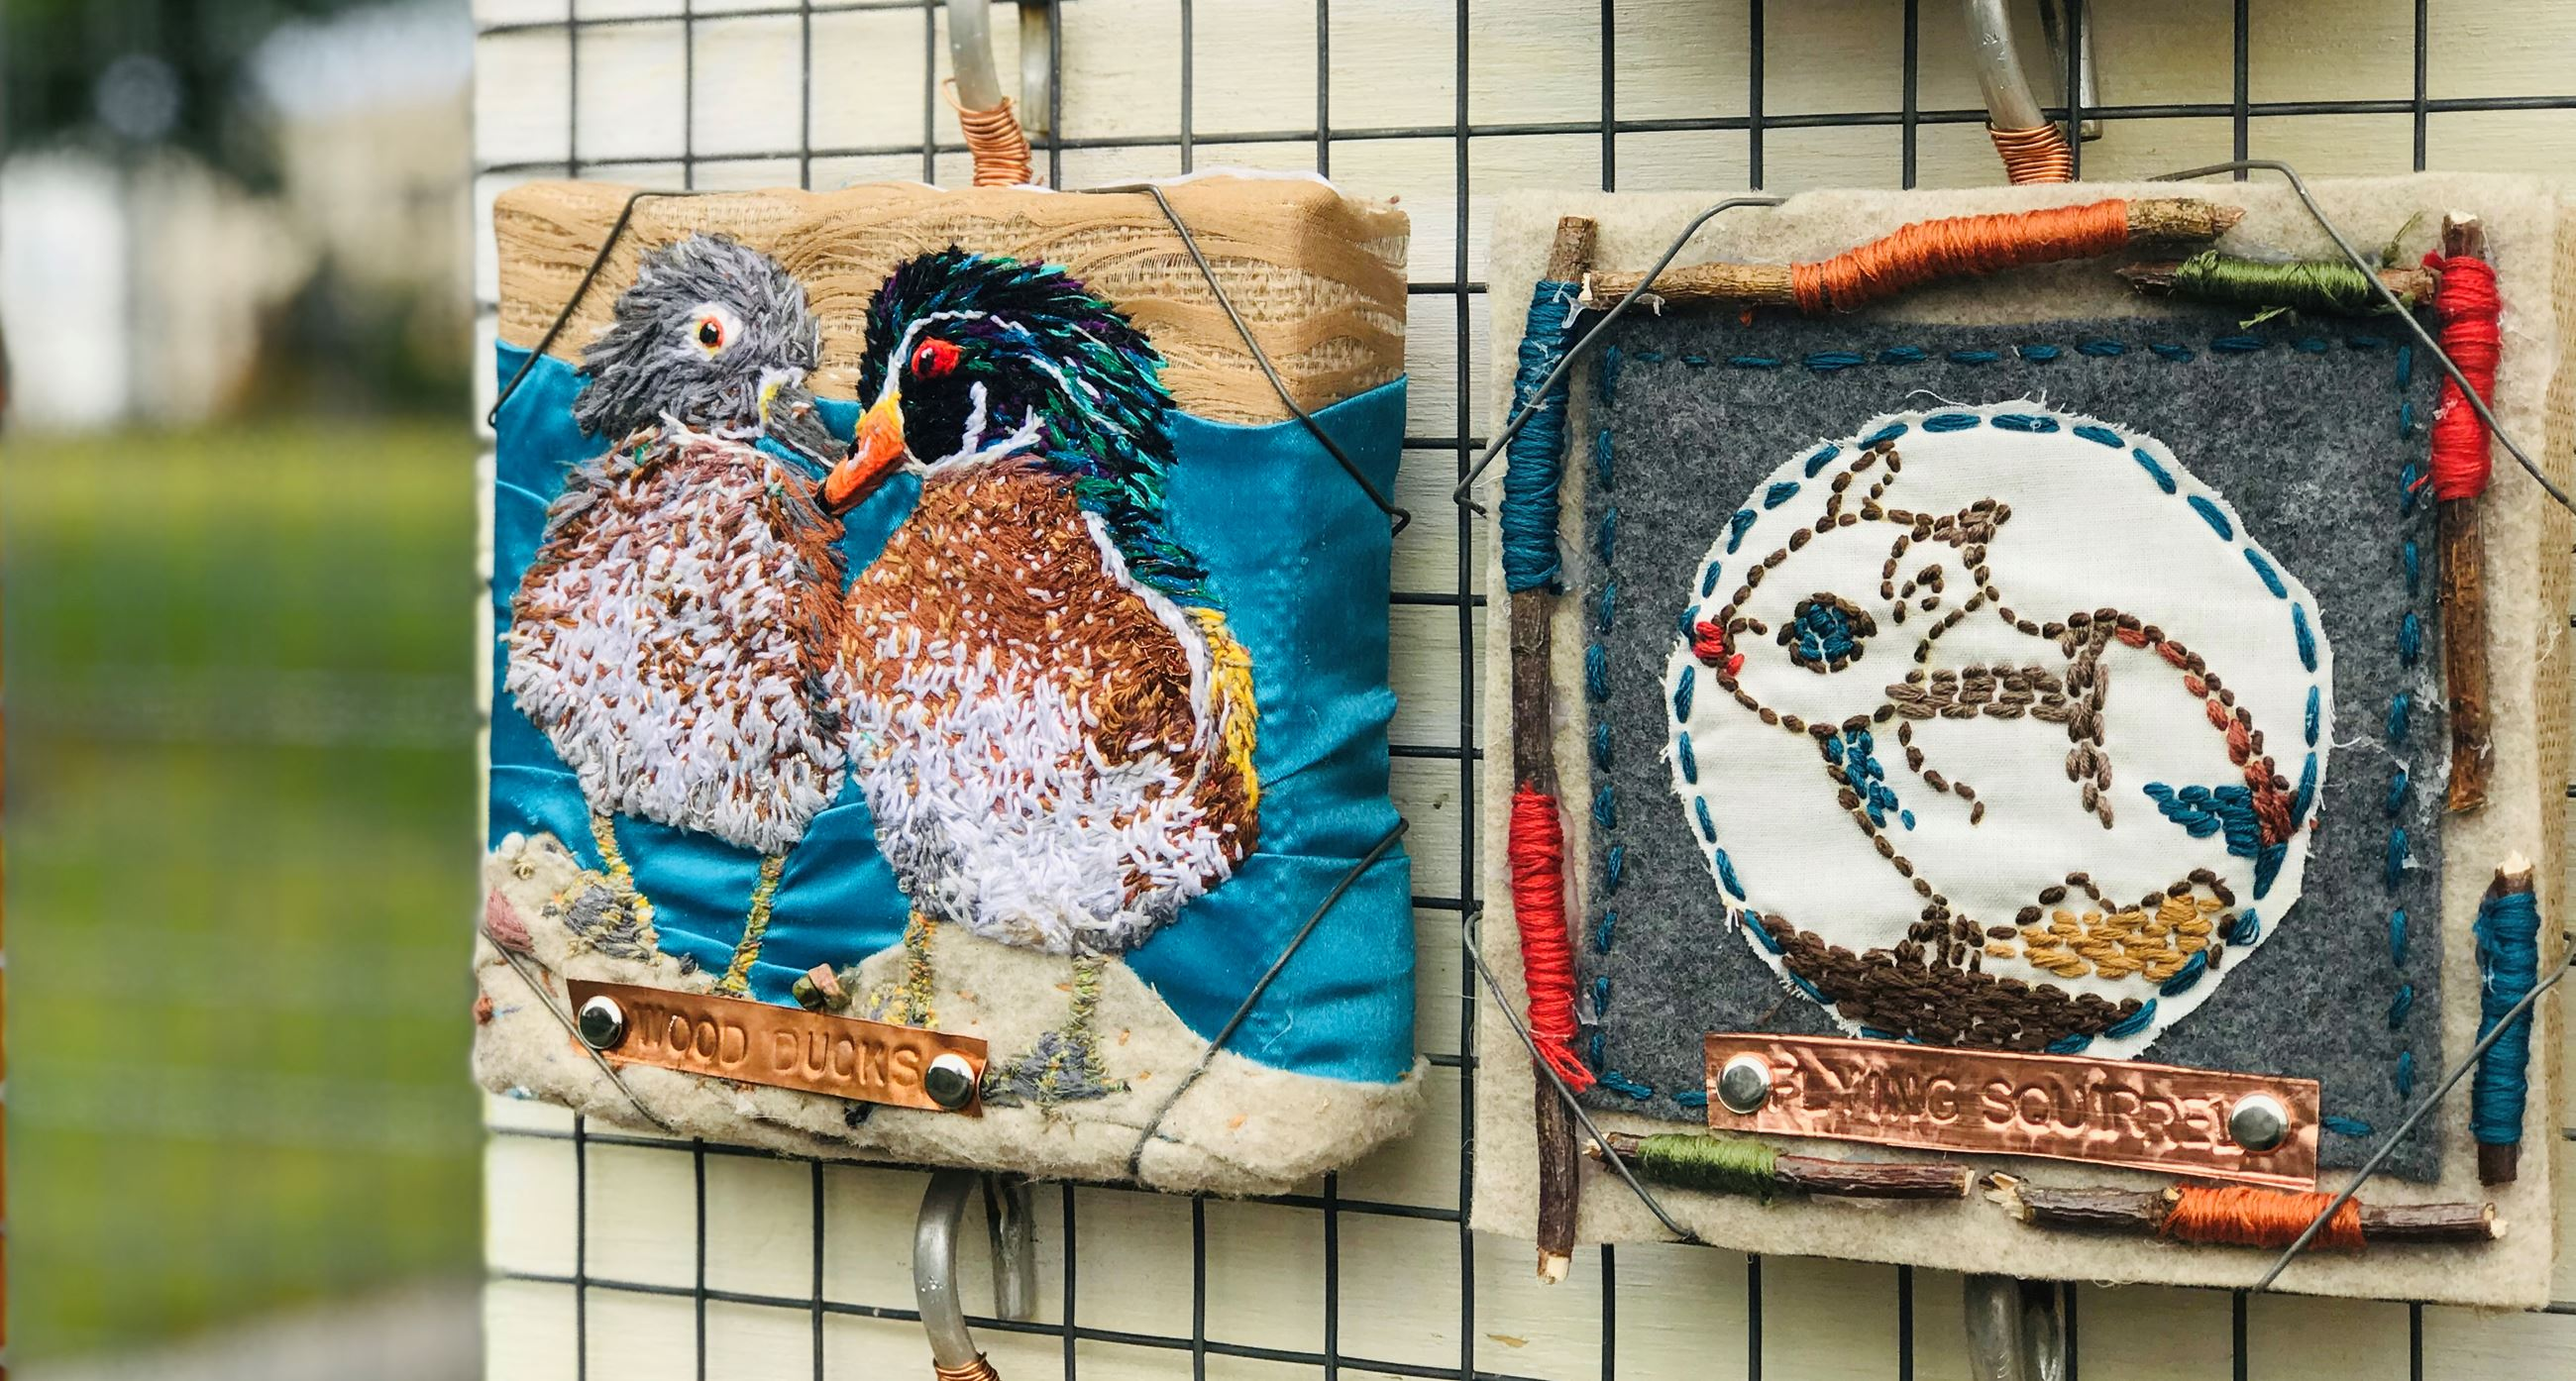 embroidery pieces artist: Phyllis Moody -Wood Ducks &  Kendyl Mathews - Southern Flying Squirrel